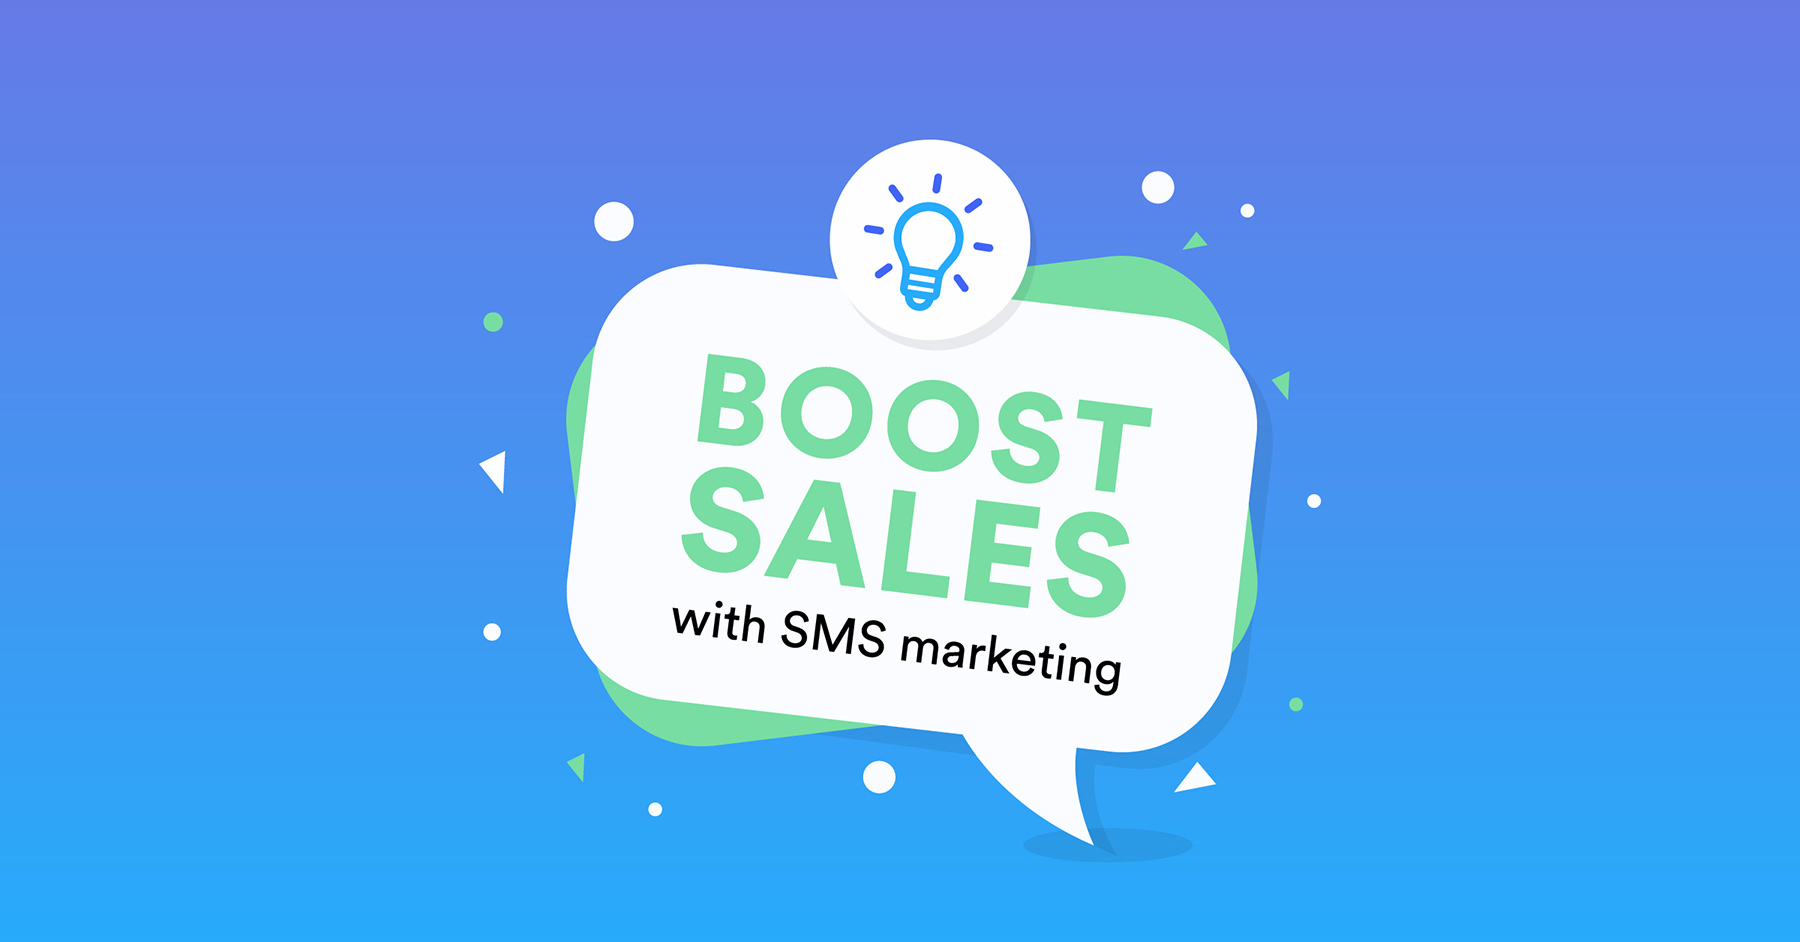 Boost Sales with SMS Marketing